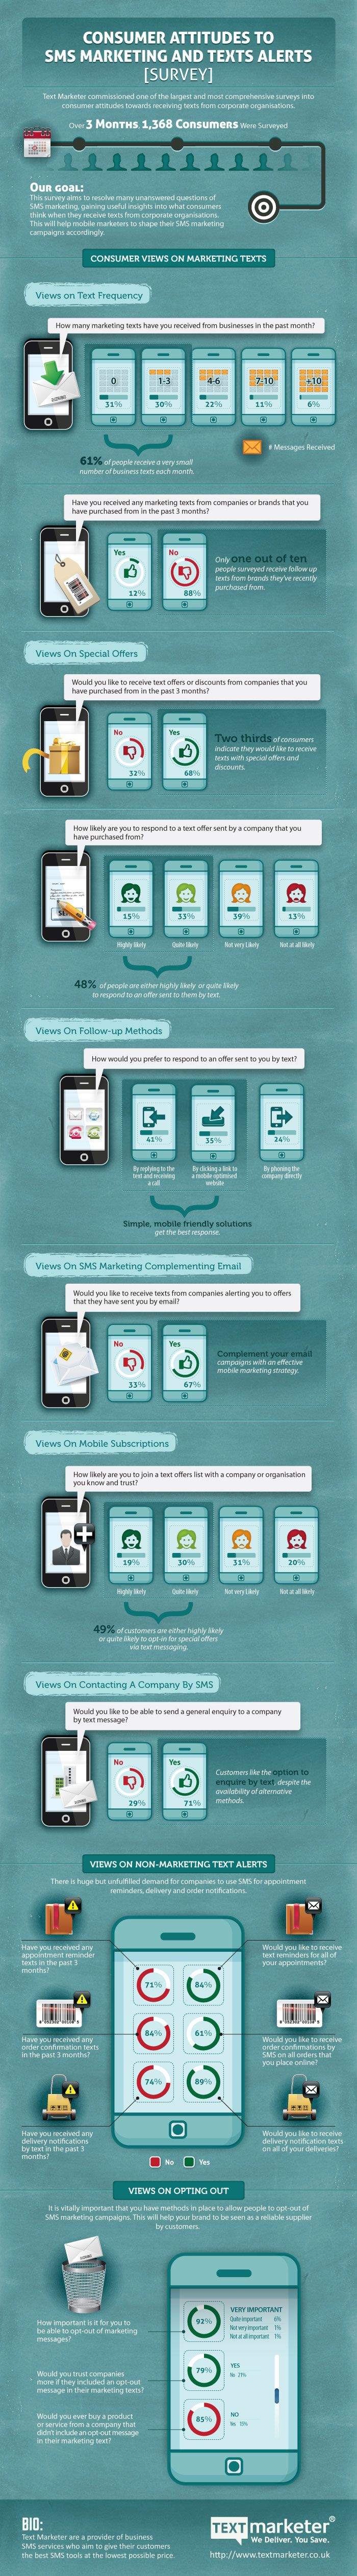 Consumer attitudes to SMS marketing and texts alerts #infographic